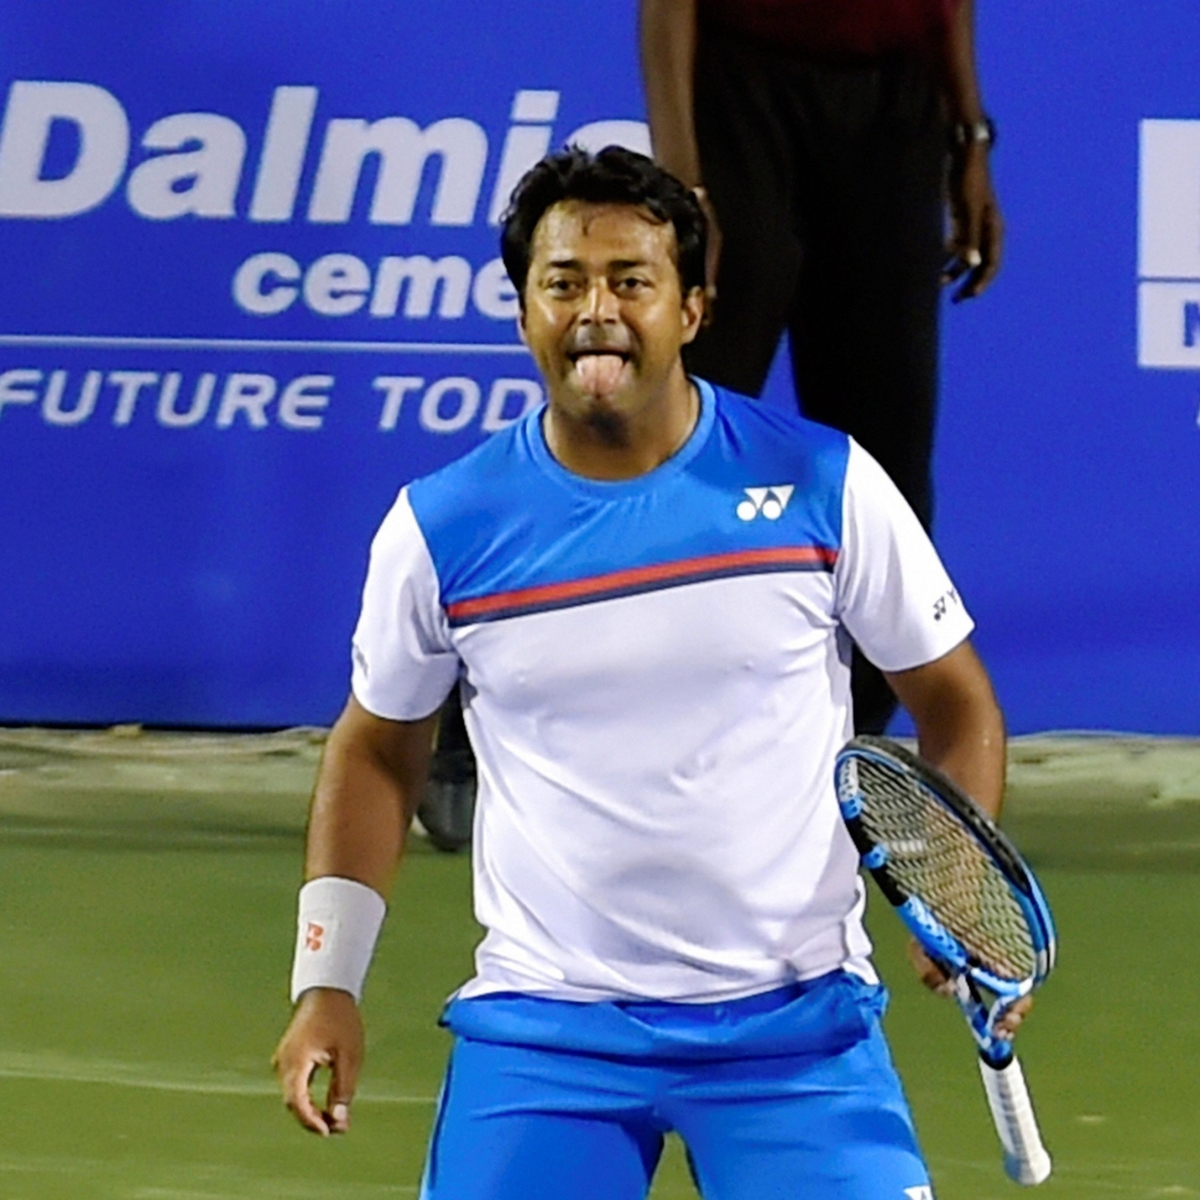 Bengaluru Open: Paes recieves special welcome for his last home ATP tour